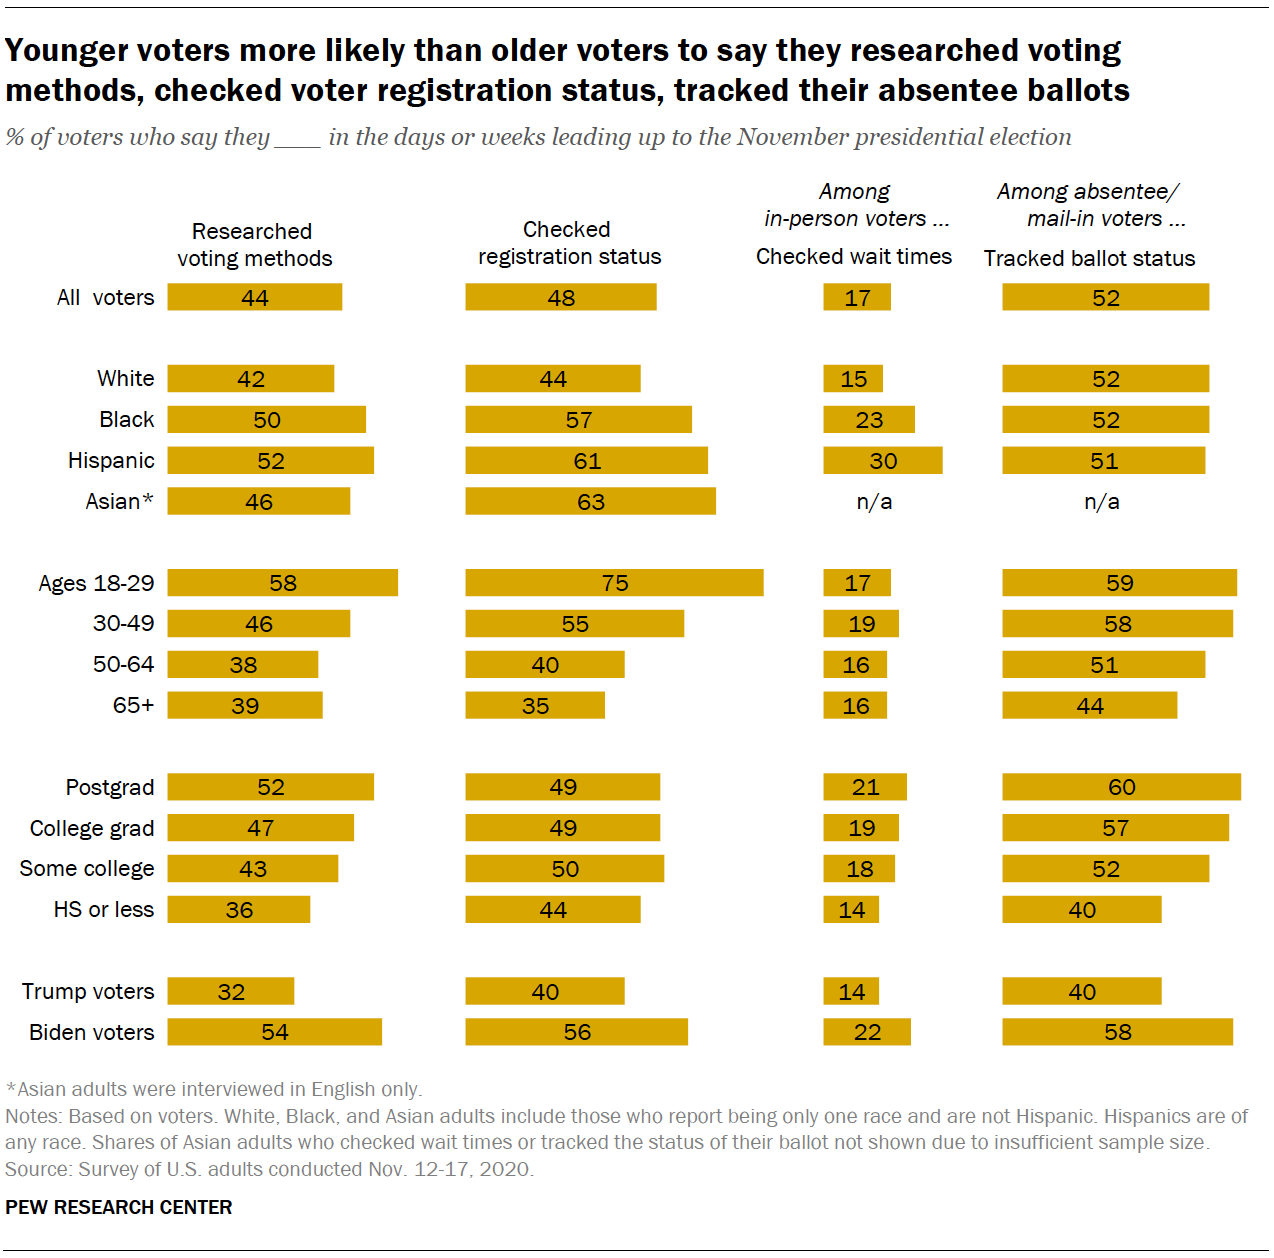 Younger voters more likely than older voters to say they researched voting methods, checked voter registration status, tracked their absentee ballots